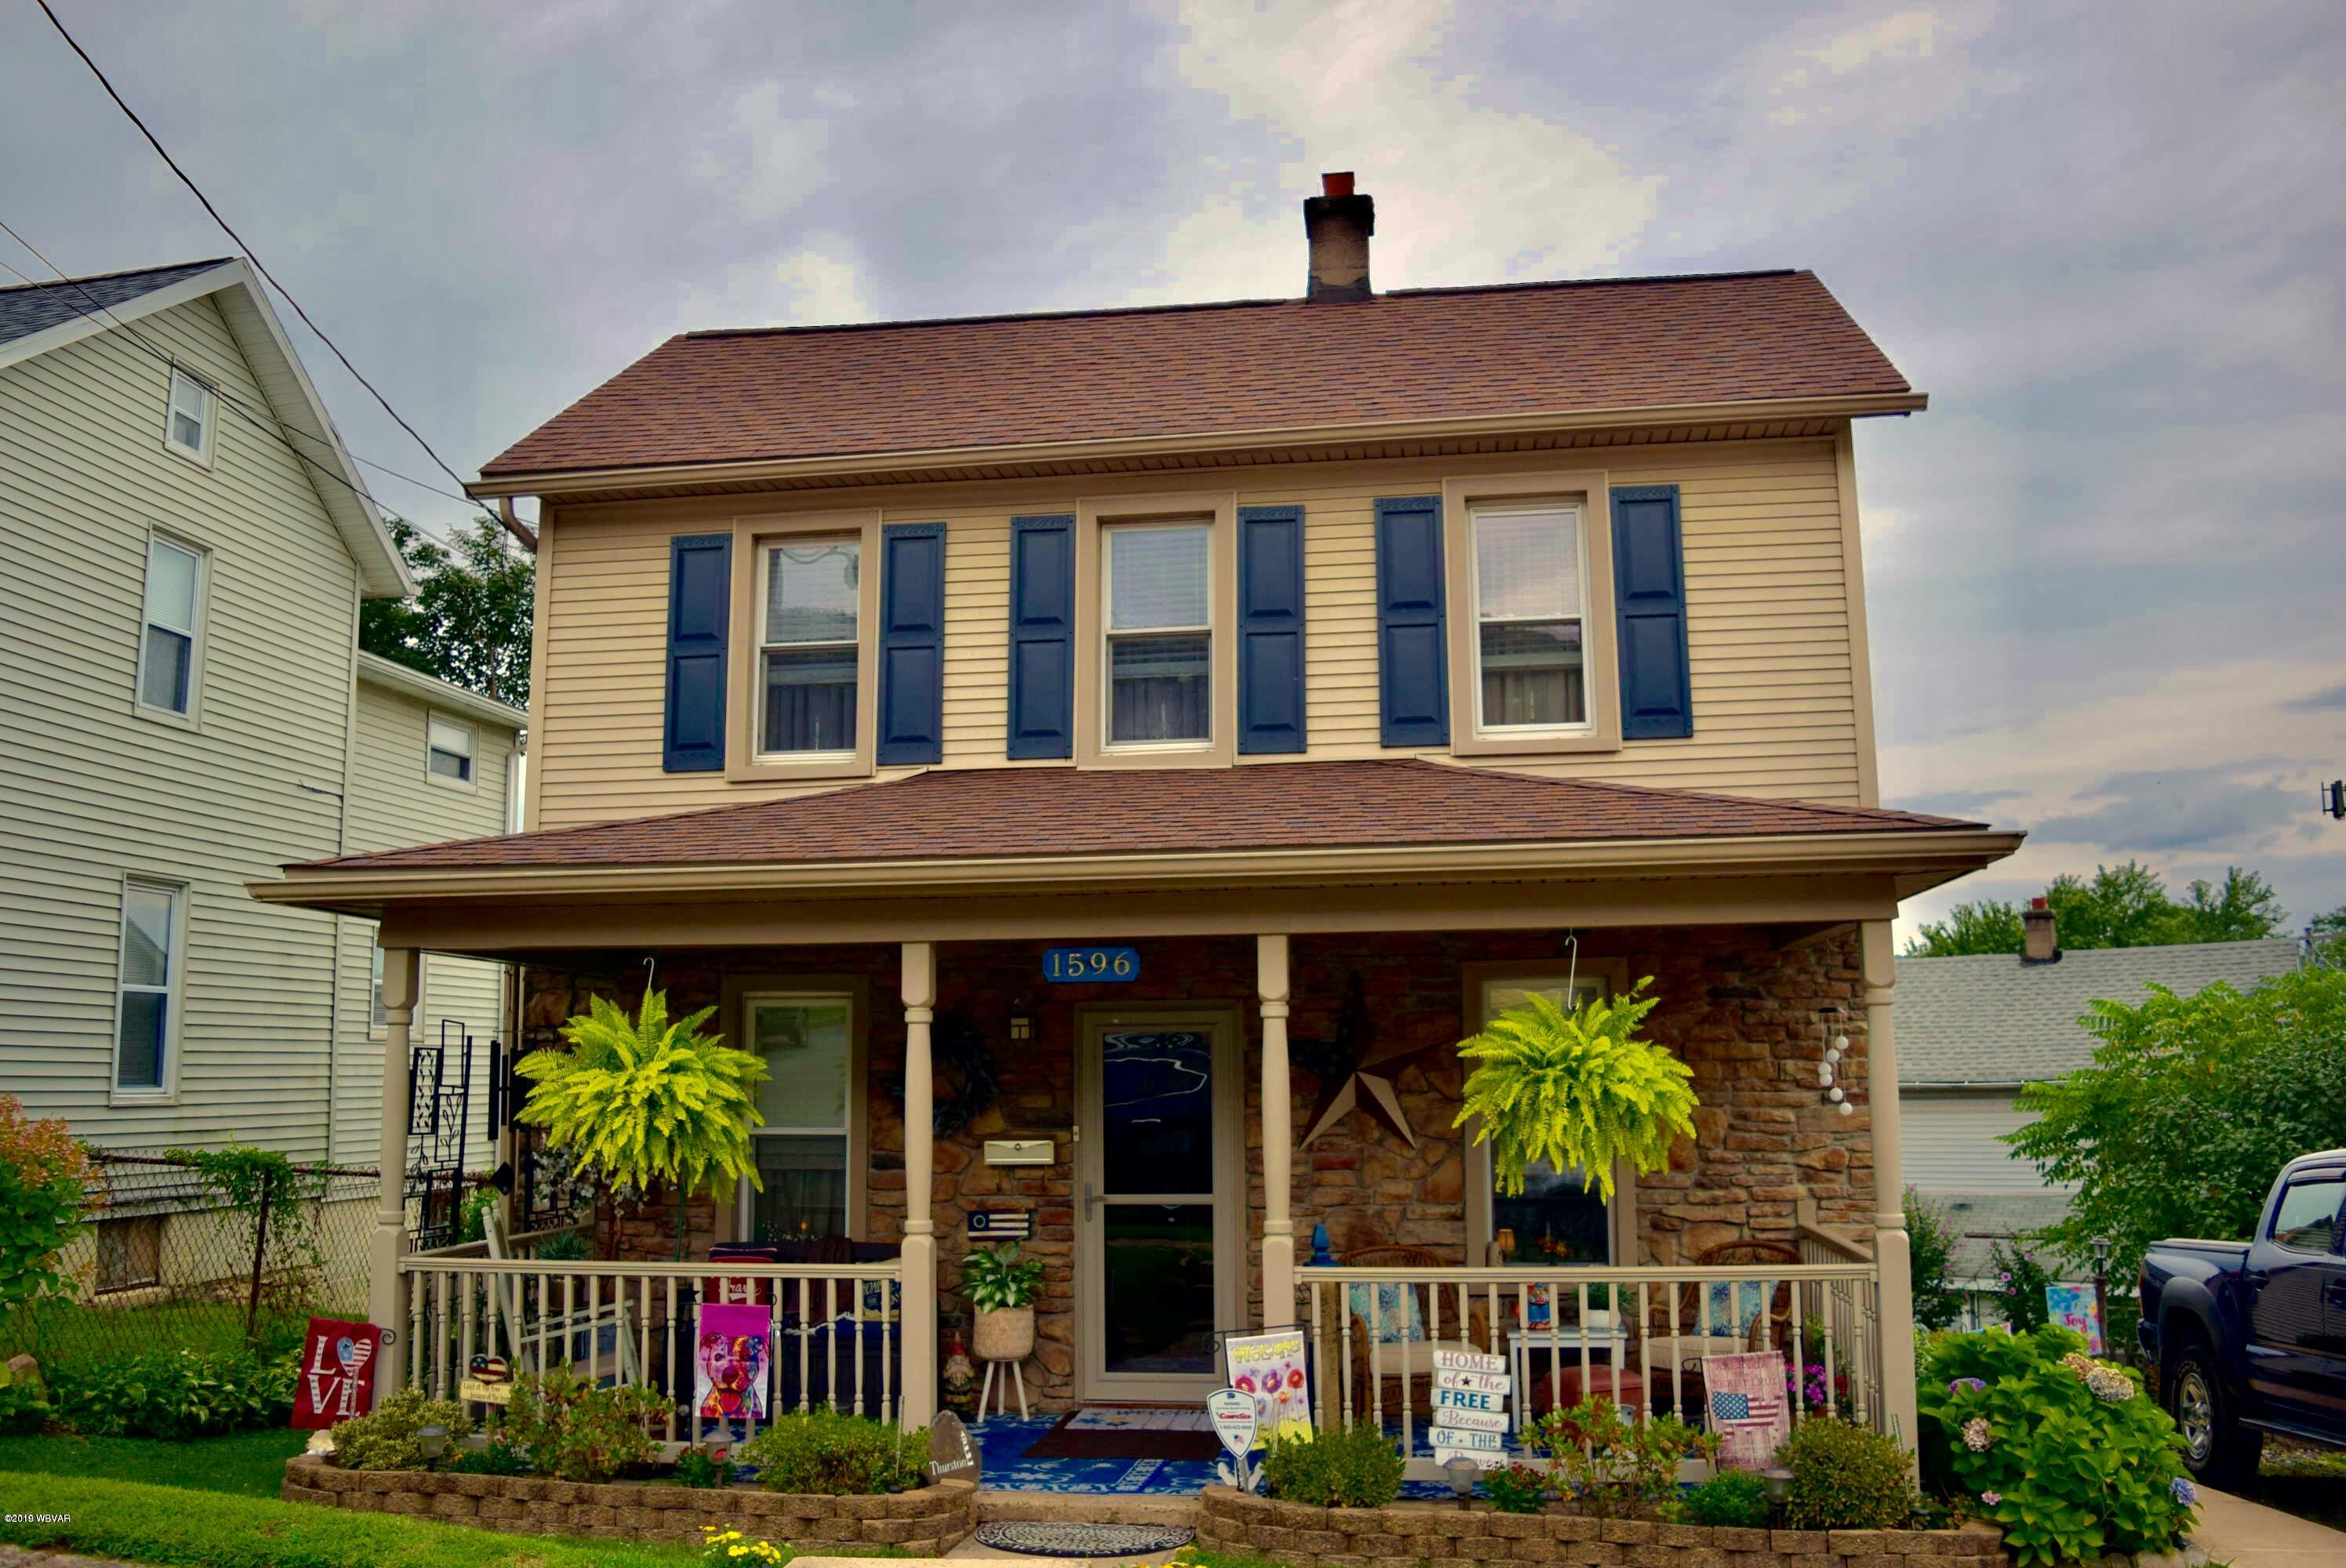 1596 SOUTHERN AVENUE,S. Williamsport,PA 17702,2 Bedrooms Bedrooms,1.5 BathroomsBathrooms,Residential,SOUTHERN,WB-88257